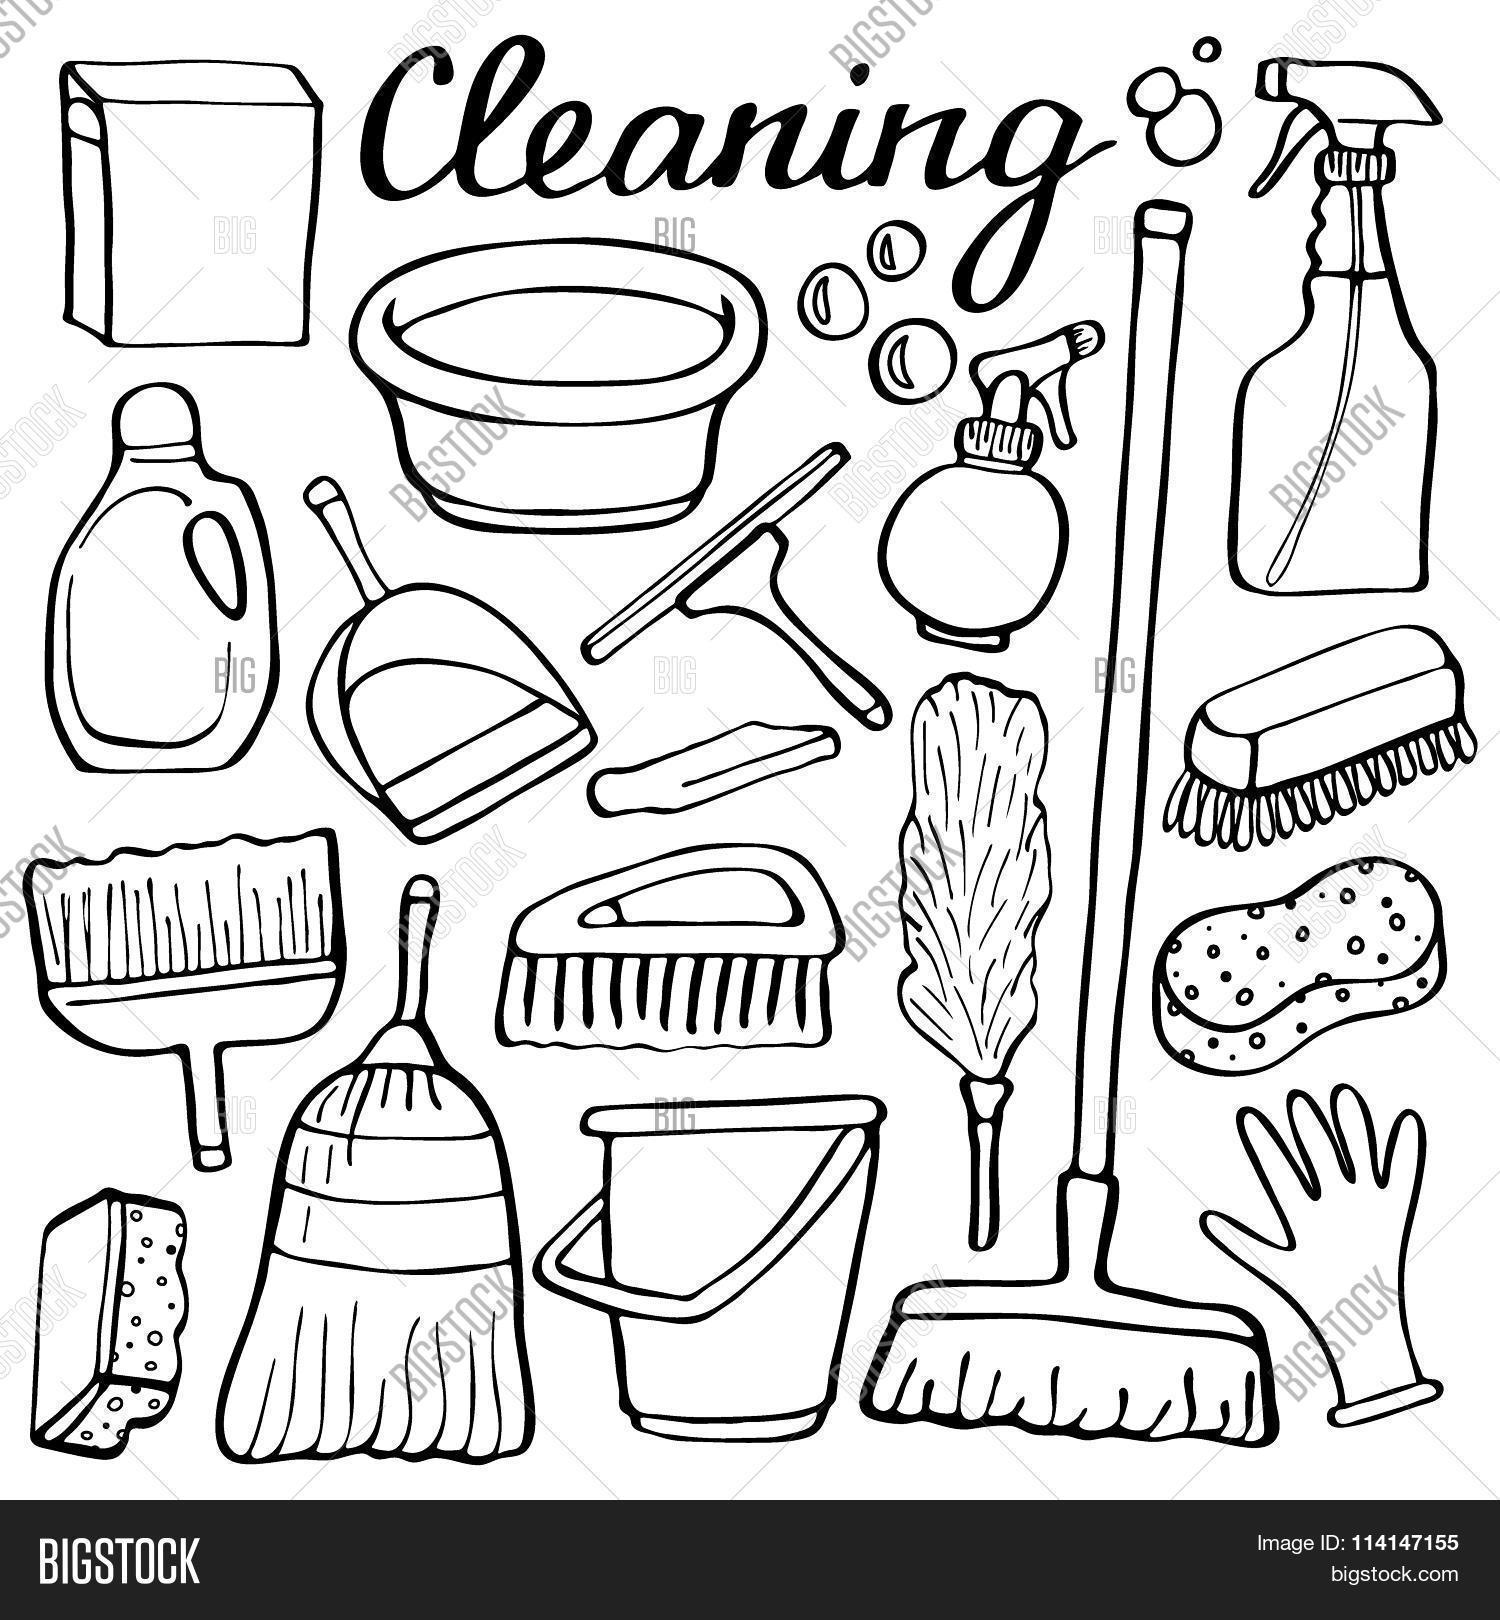 1500x1620 Cleaning Tools Set. Hand Drawn Vector Amp Photo Bigstock